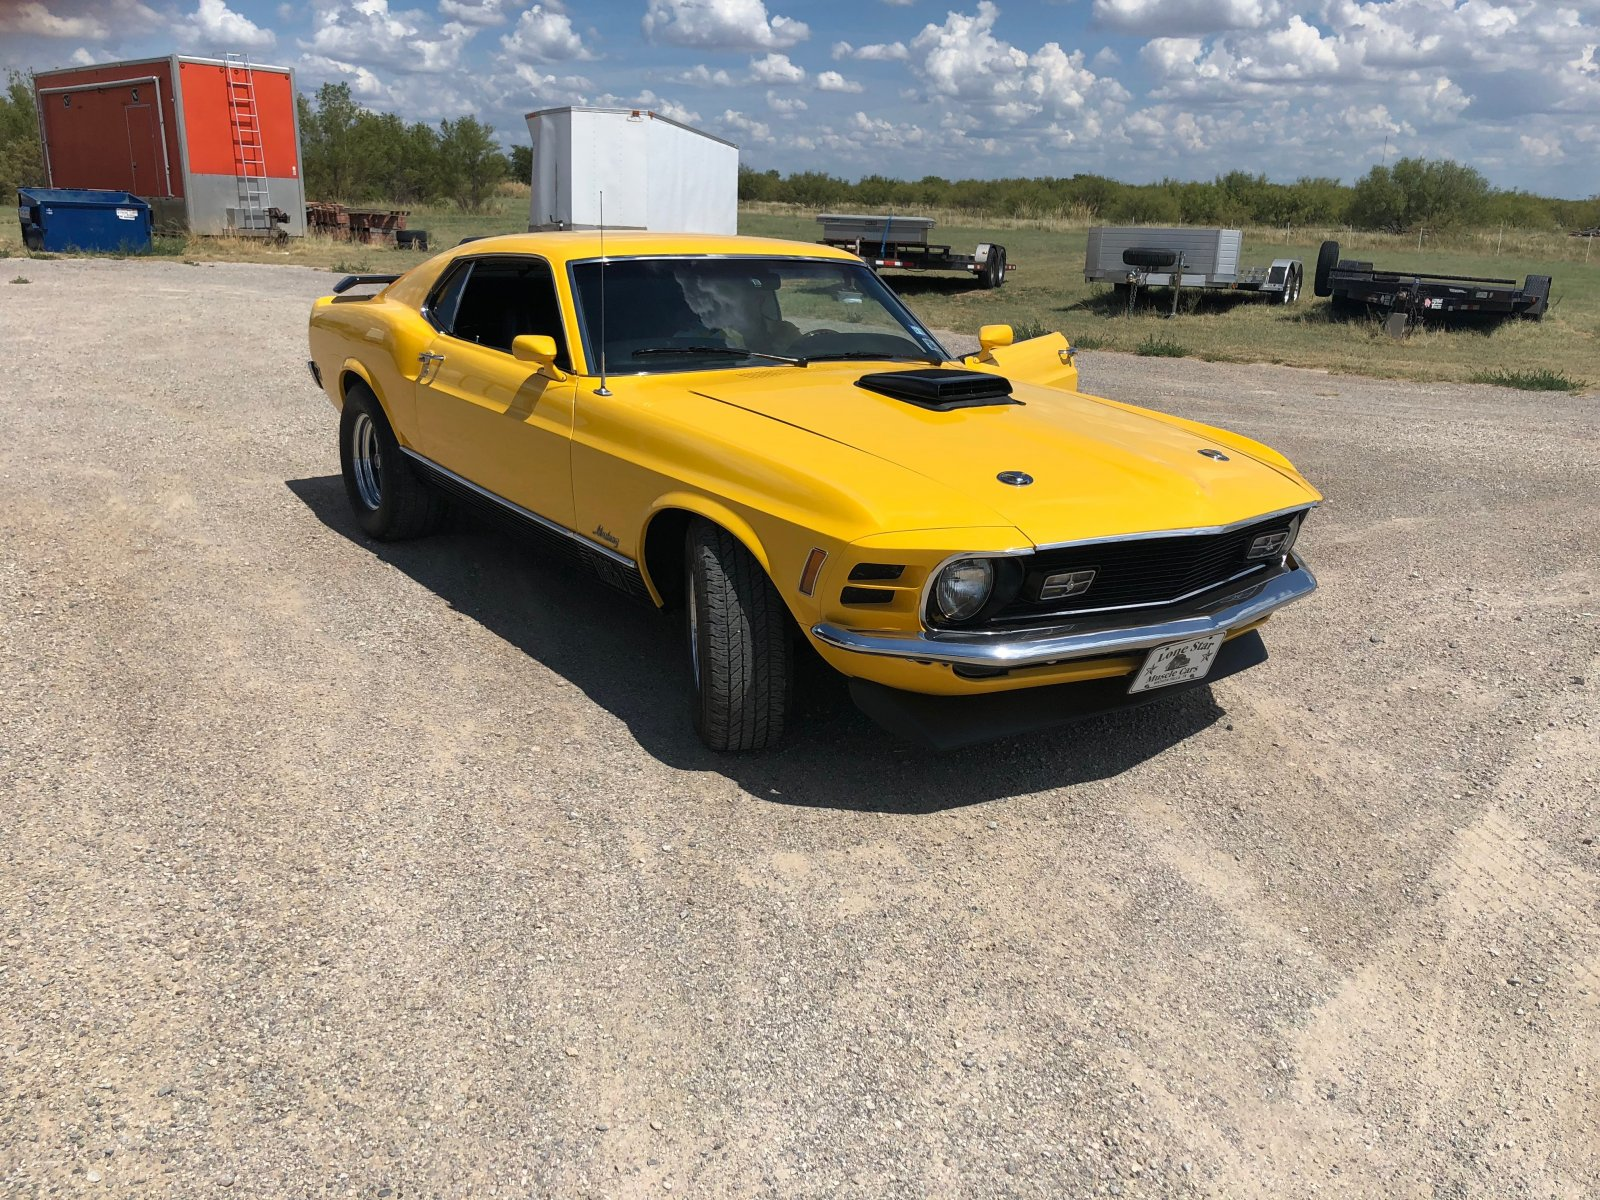 Surprising Parents With Their 1970 Mustang Mach 1 3.jpg